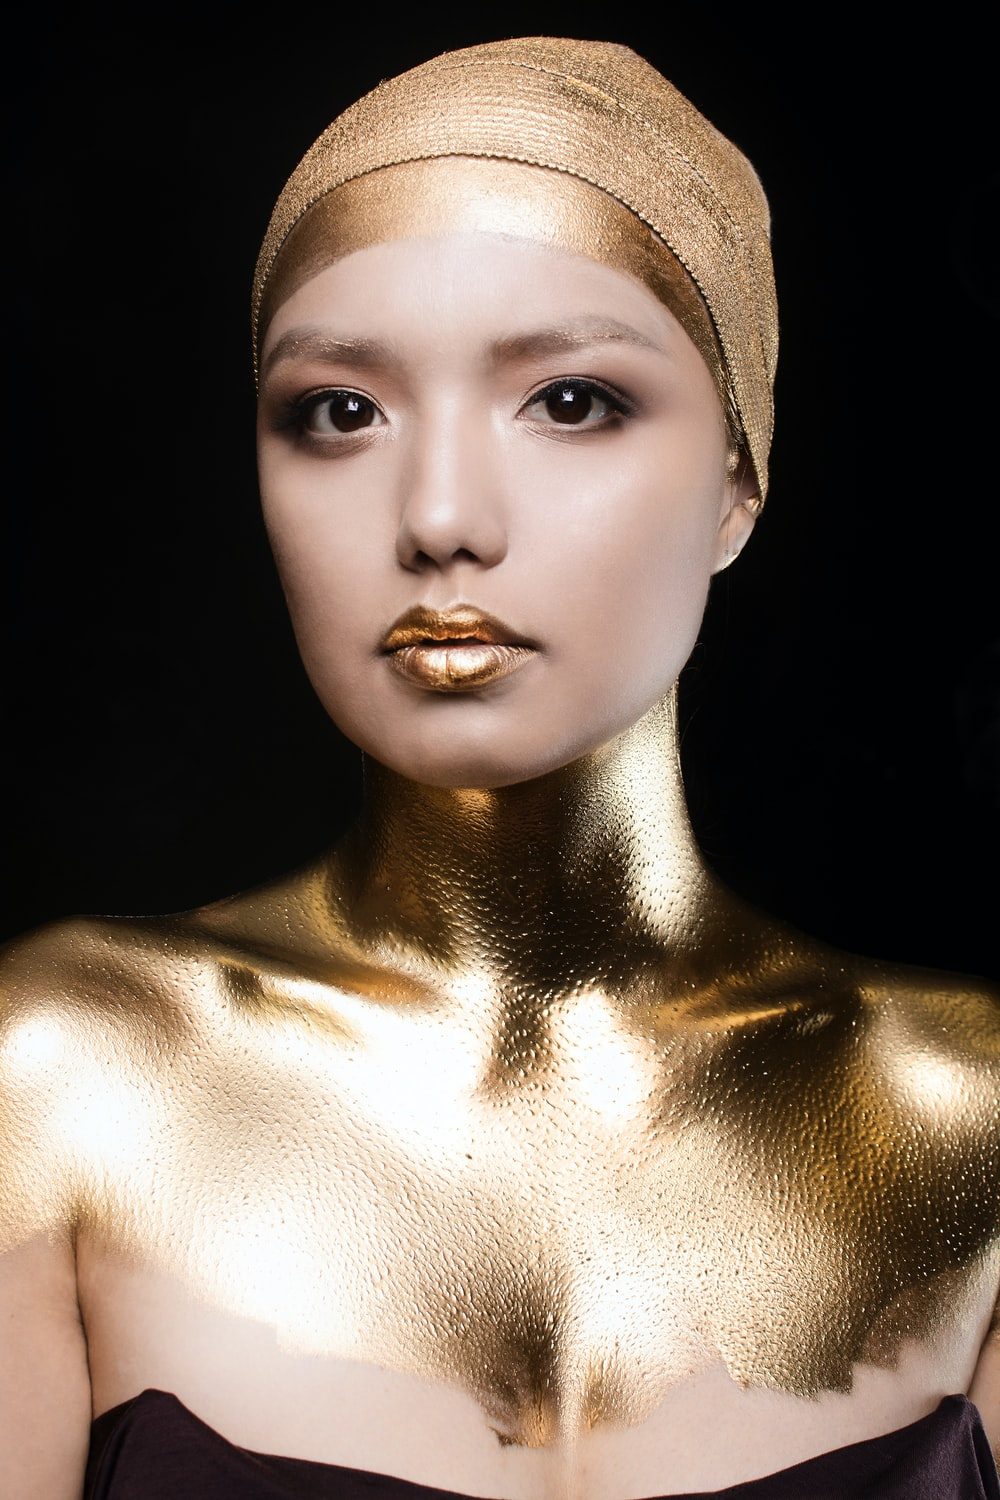 woman's body covered in gold color